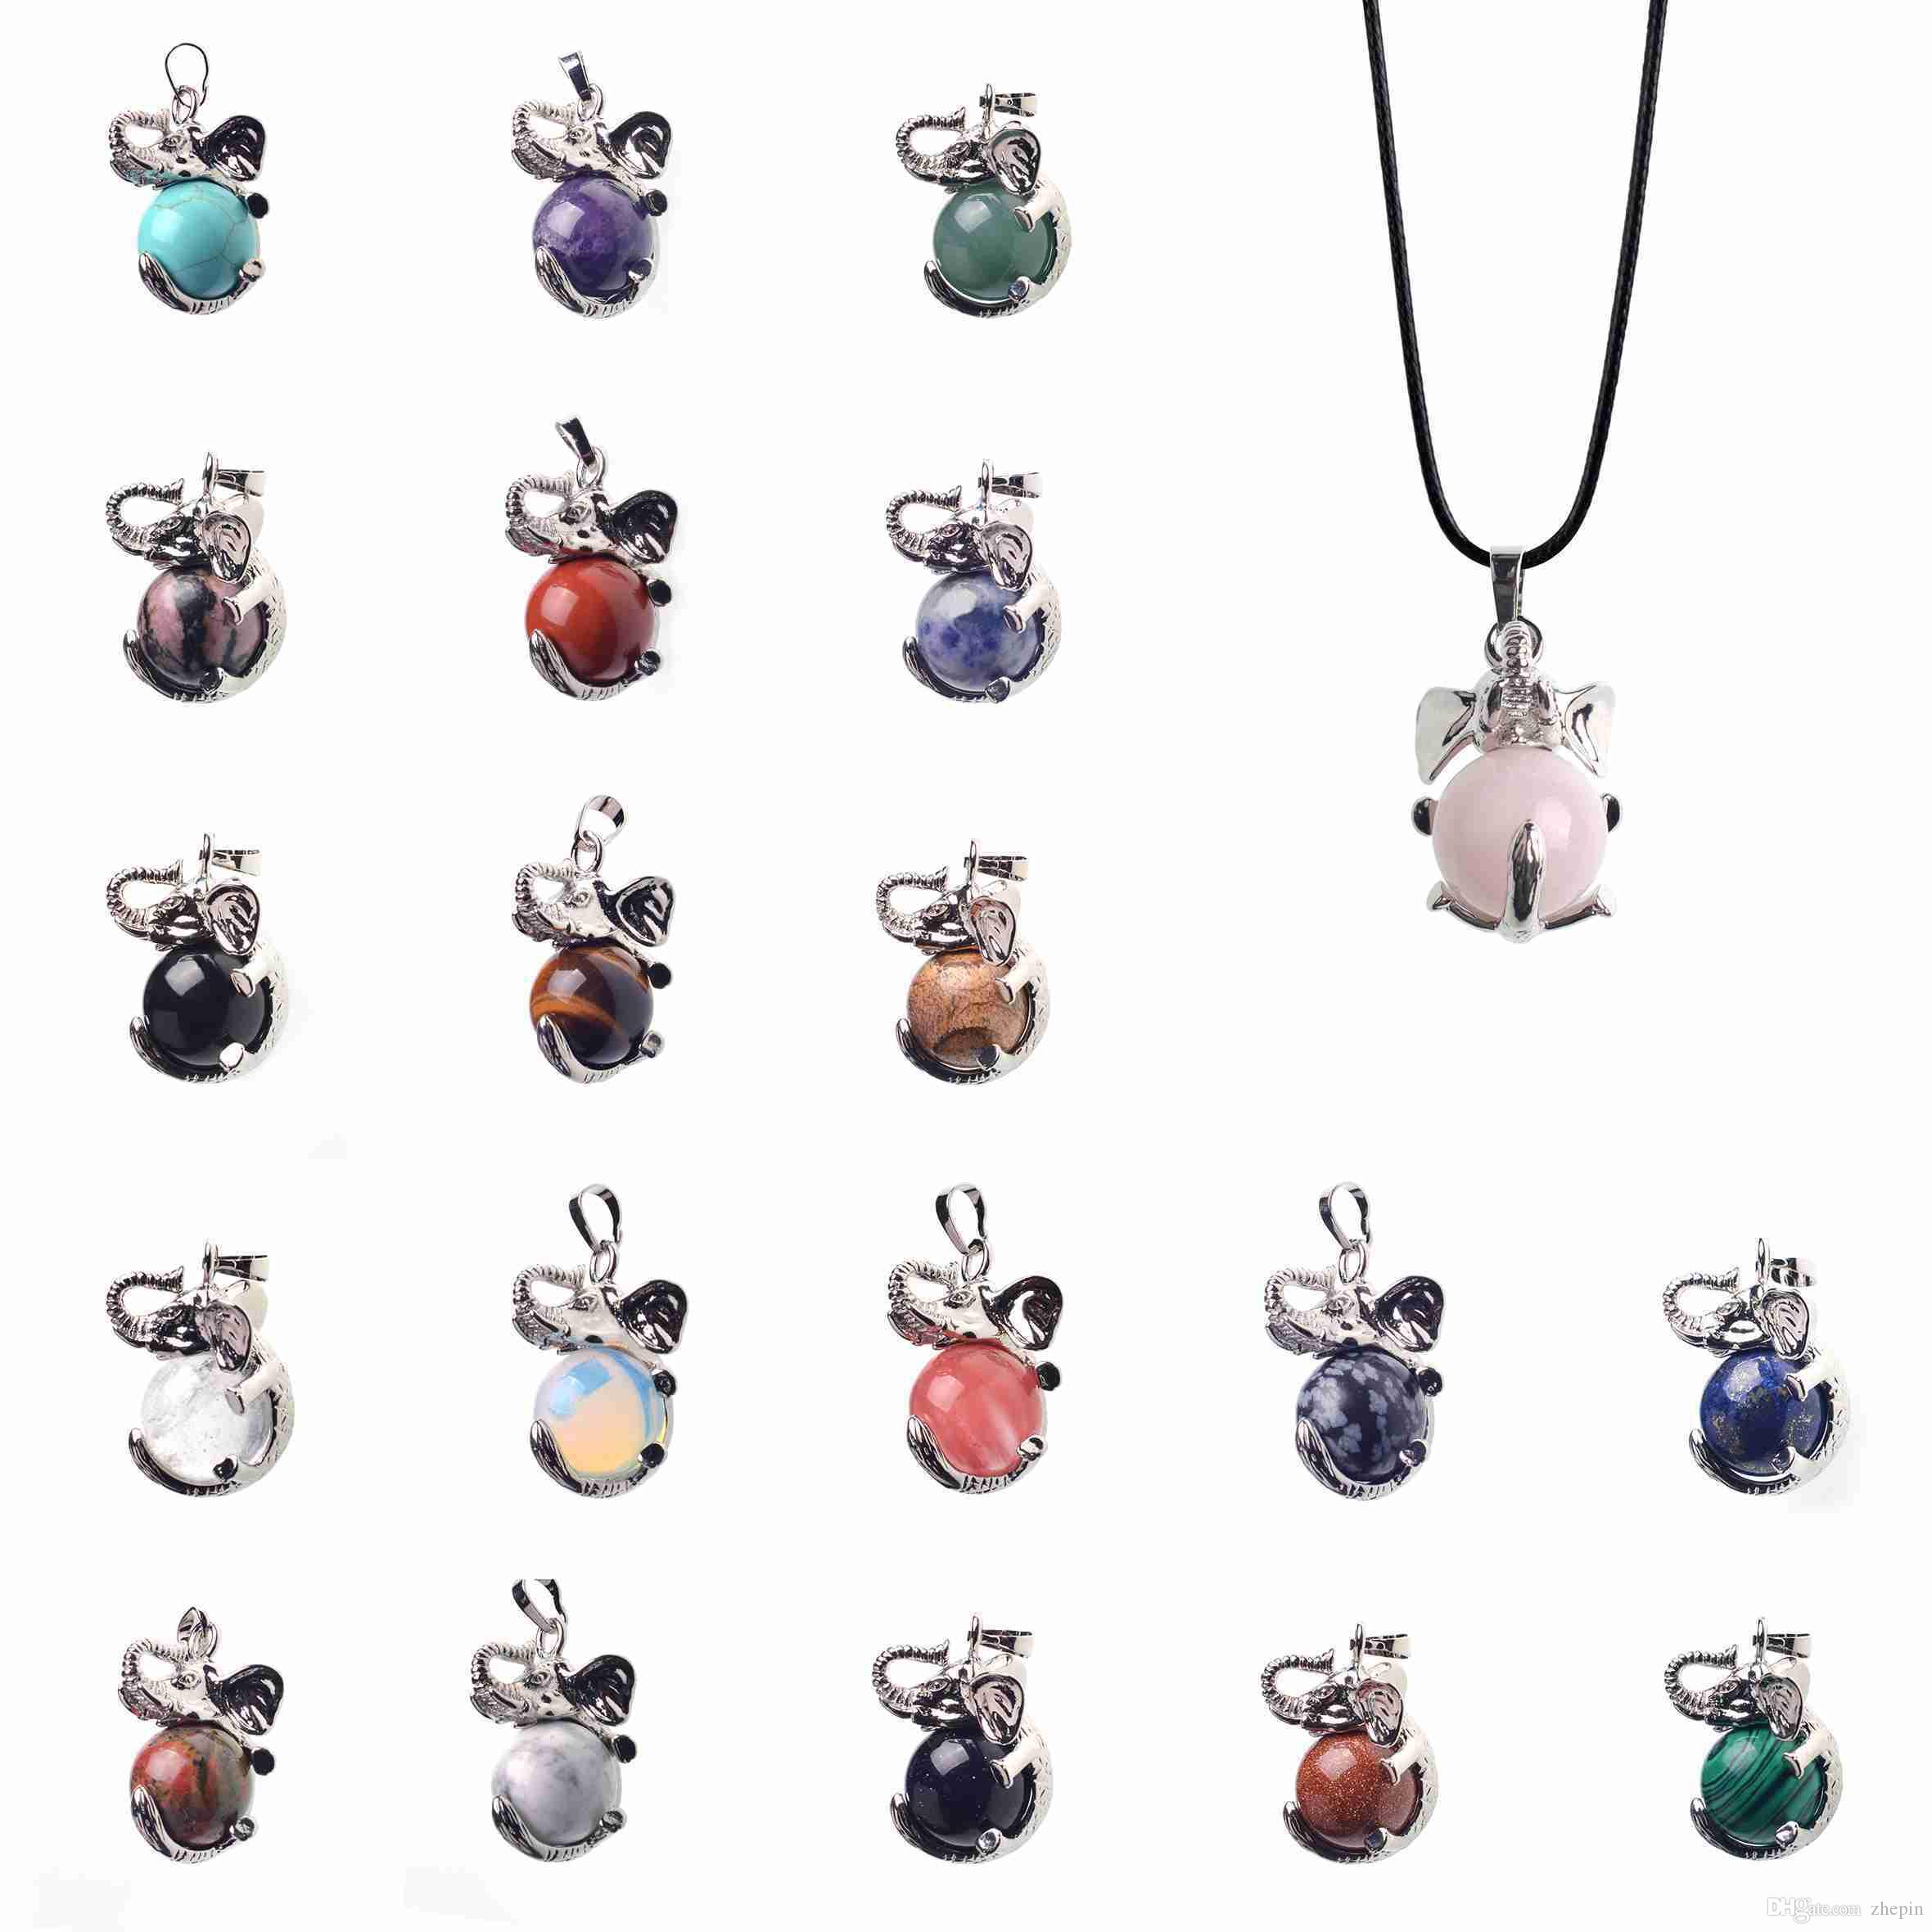 Compre zhepin healing chakra gemstone charm natural crystal ball compre zhepin healing chakra gemstone charm natural crystal ball colgante de aleacin de plata elephant charm pendant necklace womens necklace a 282 del aloadofball Image collections